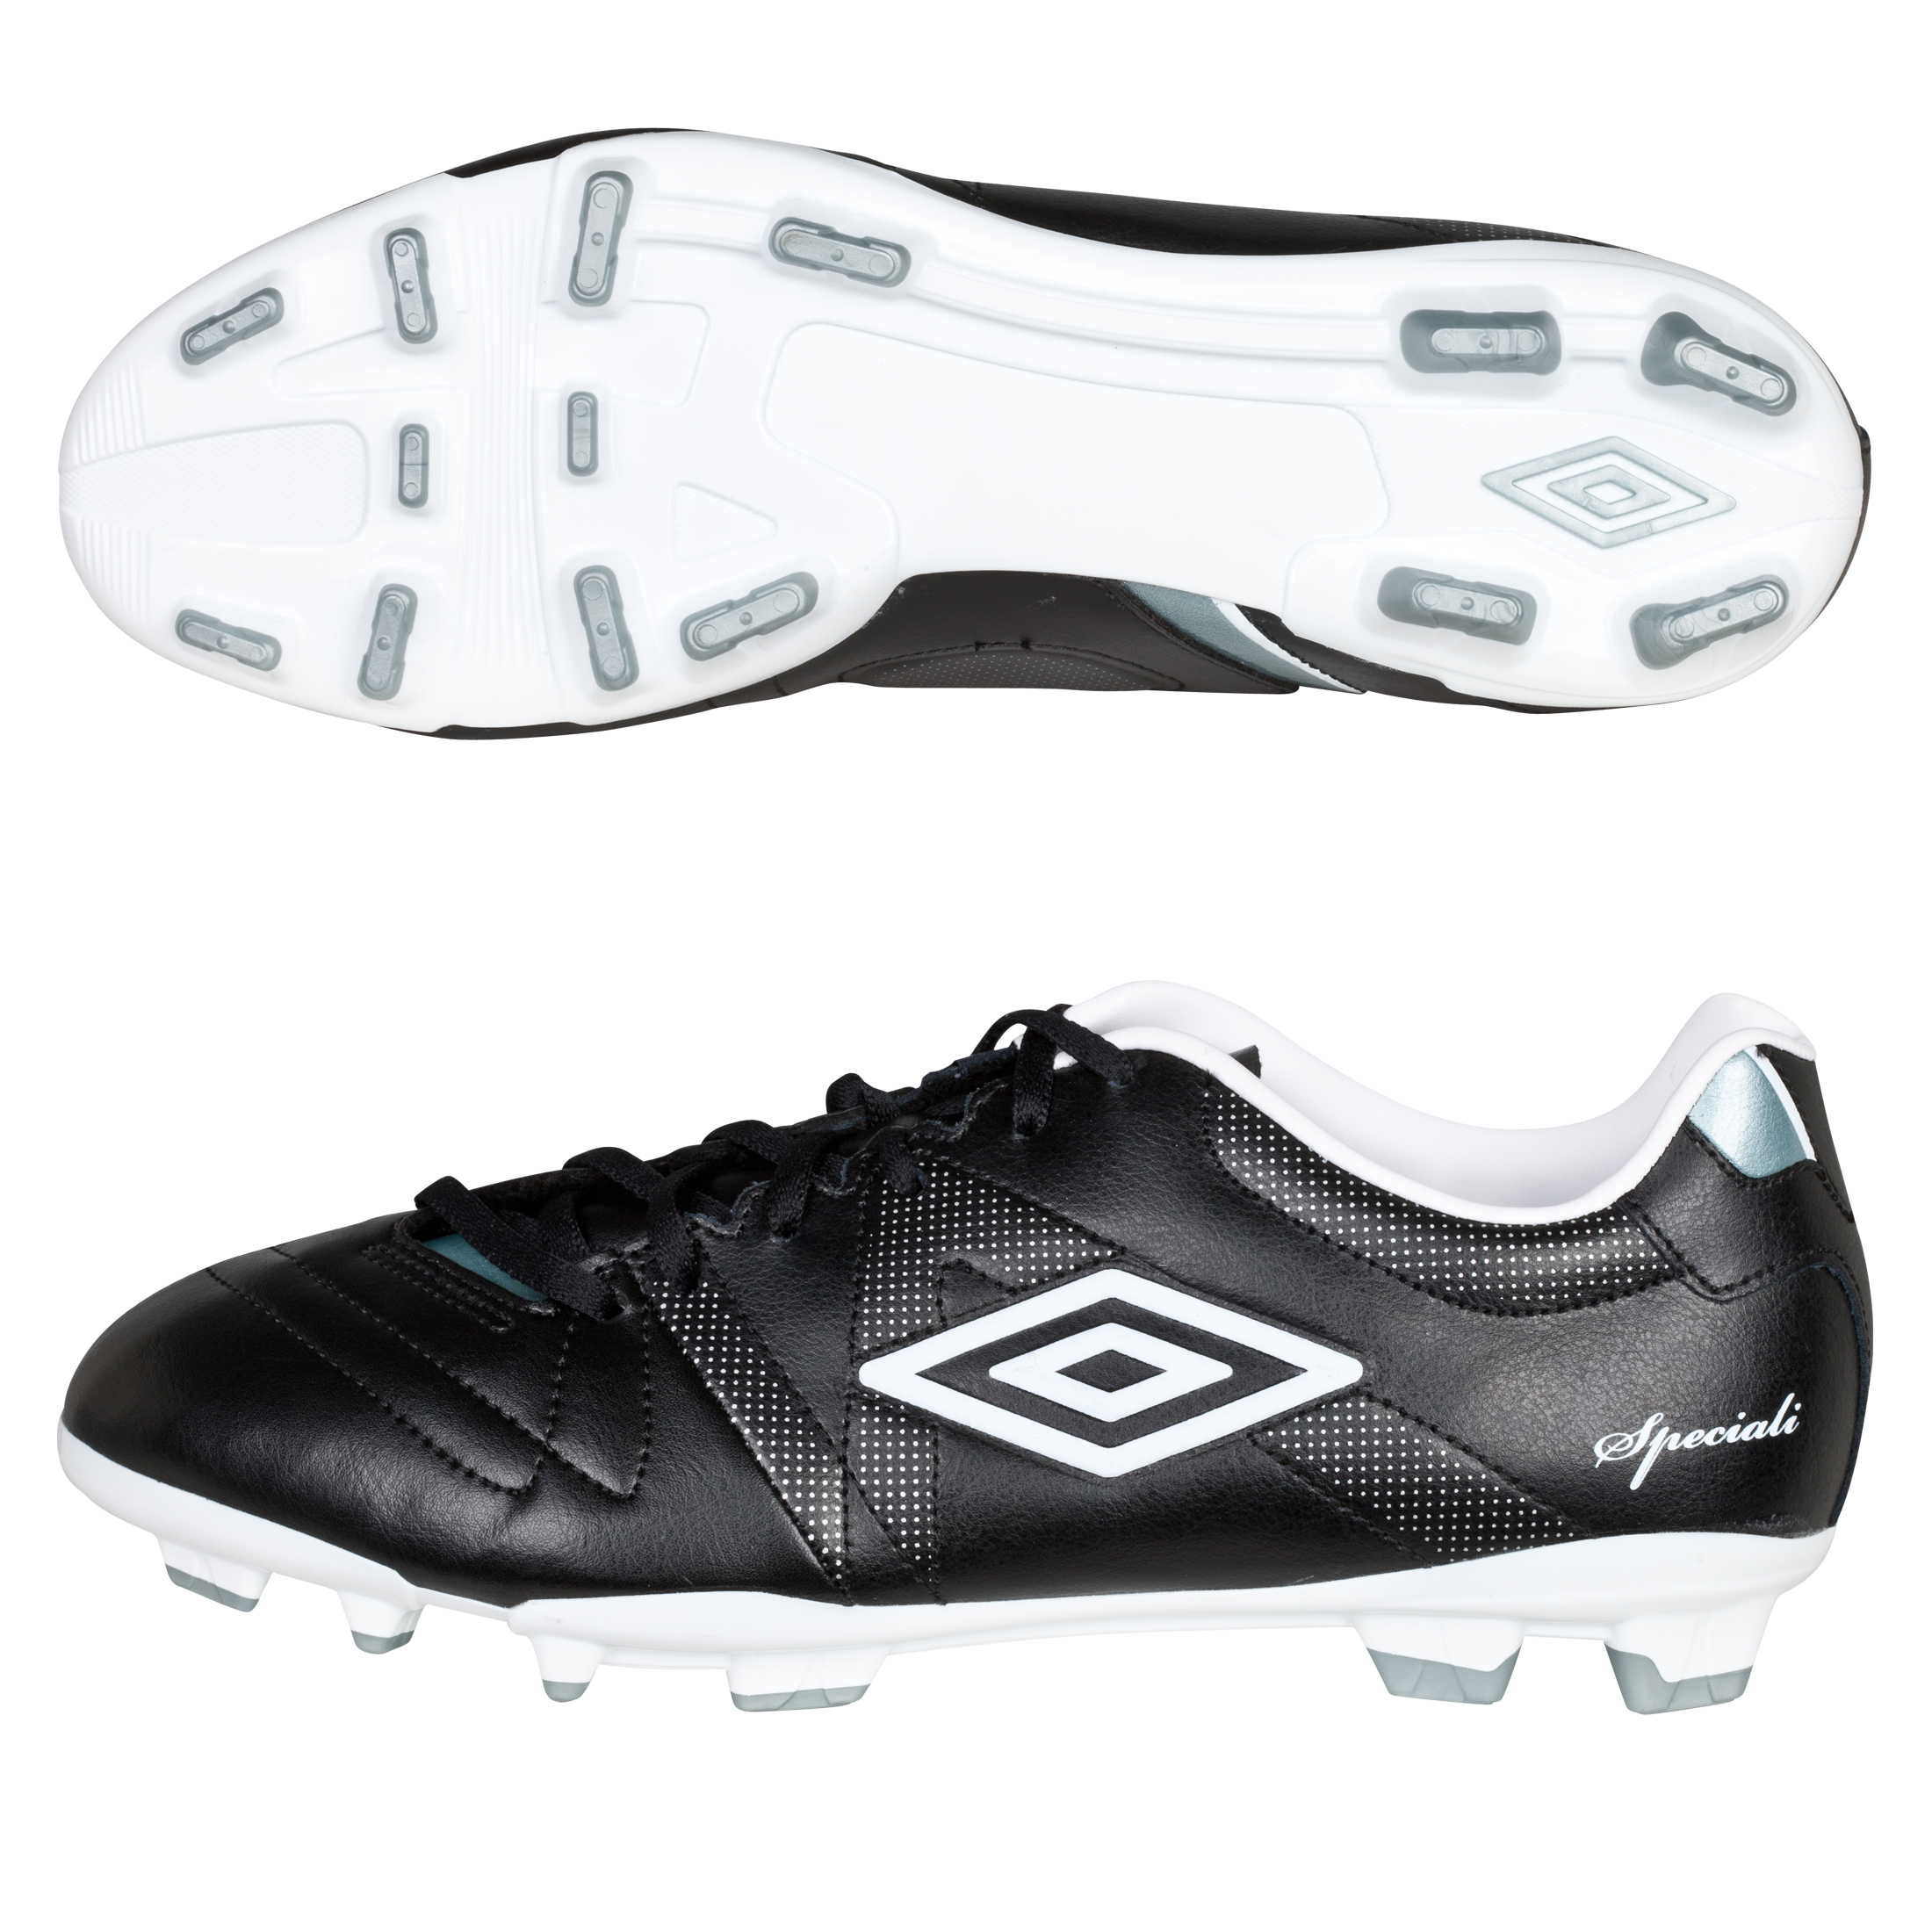 Umbro Speciali 3 Cup Firm Ground Football Boots - Black/White/Chrome